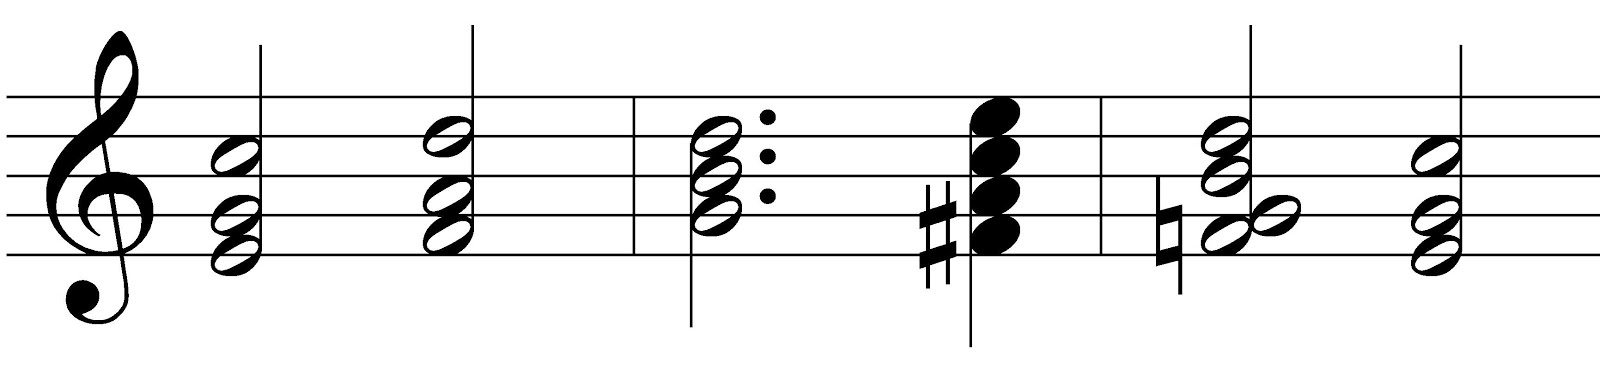 Music Theory: Block Chords and Broken Chords